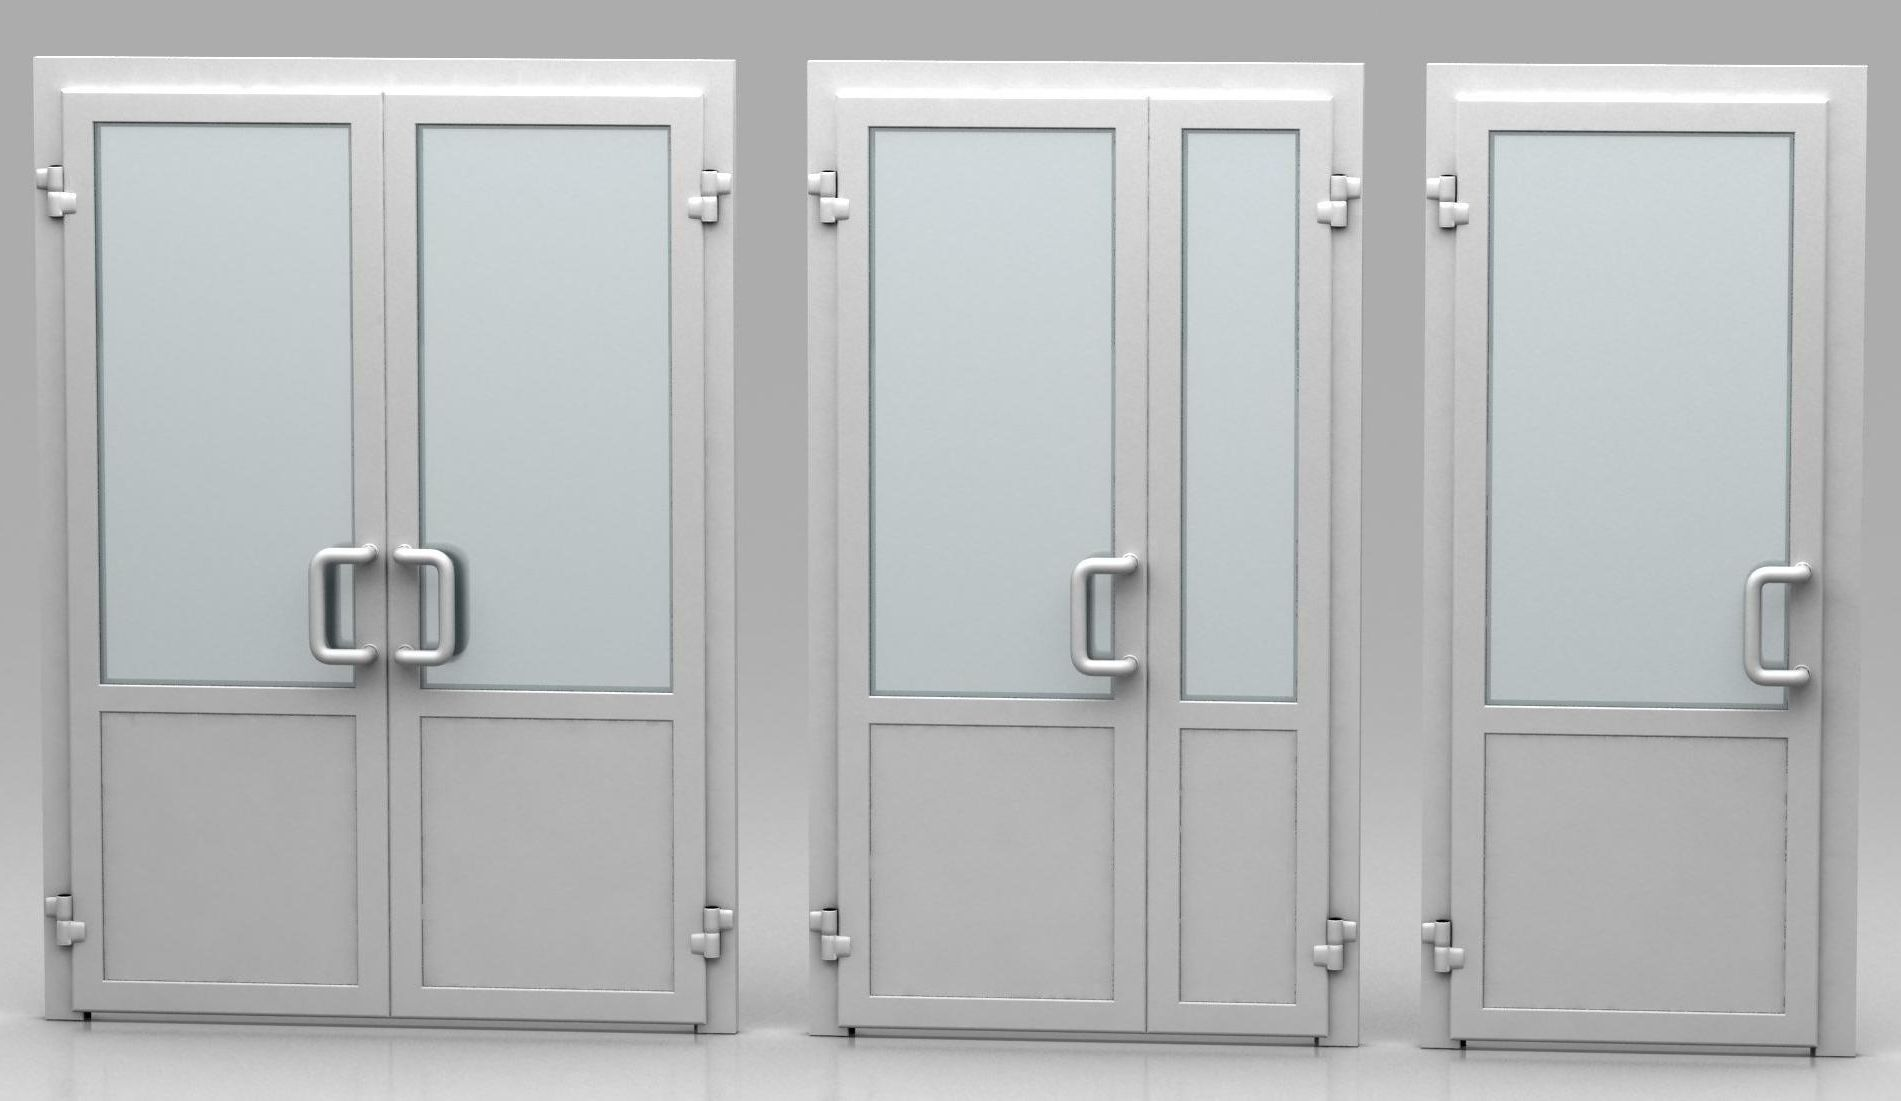 White plastic doors for offices and shops